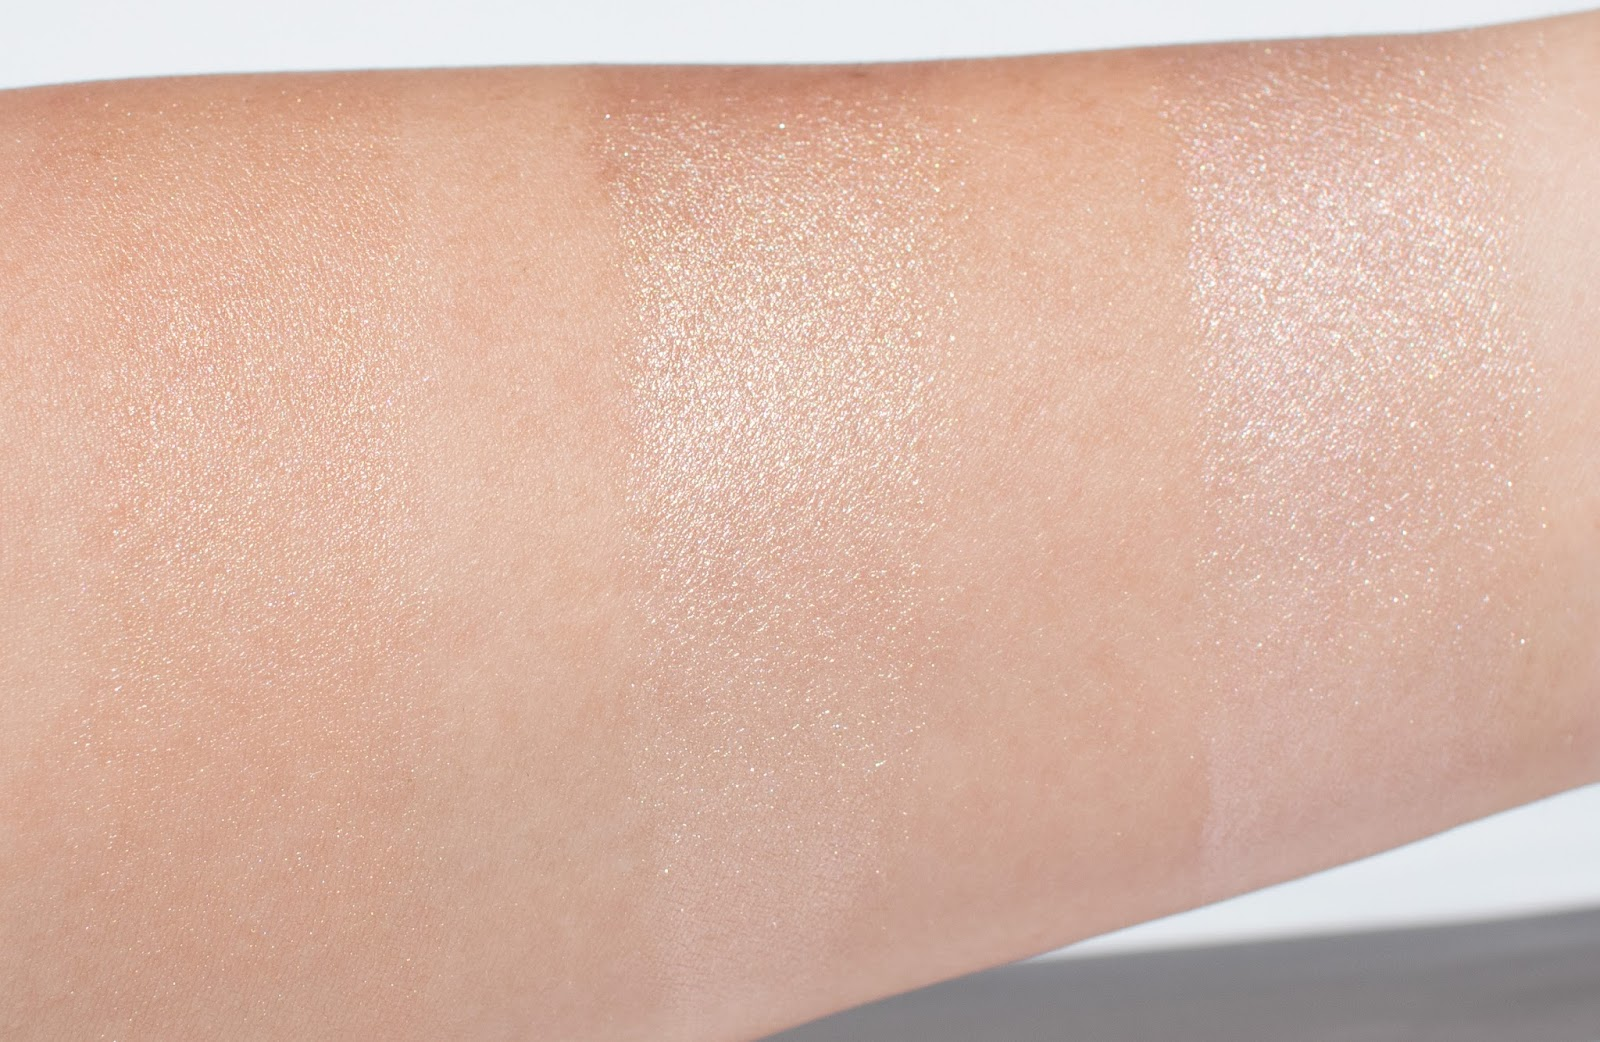 Becca Shimmering Skin Perfector Liquid Highlighter in Opal Swatch